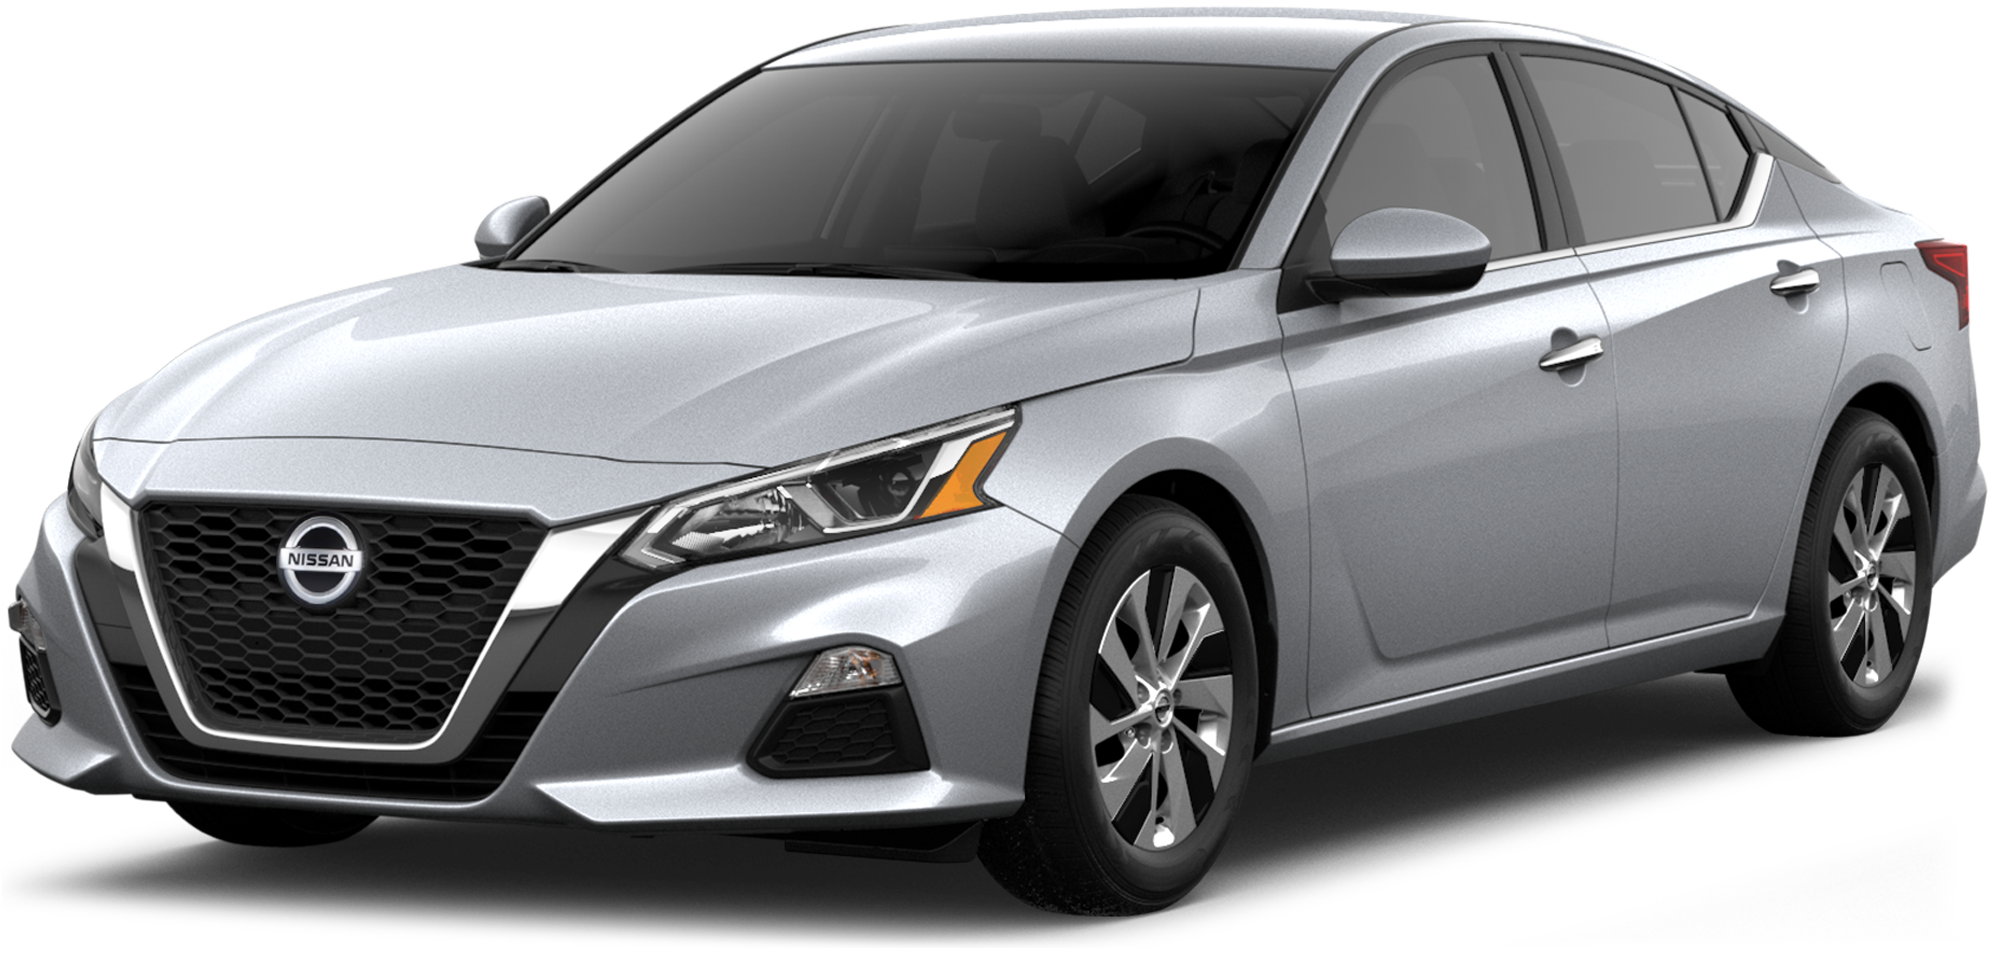 2020 Nissan Altima Incentives, Specials & Offers In